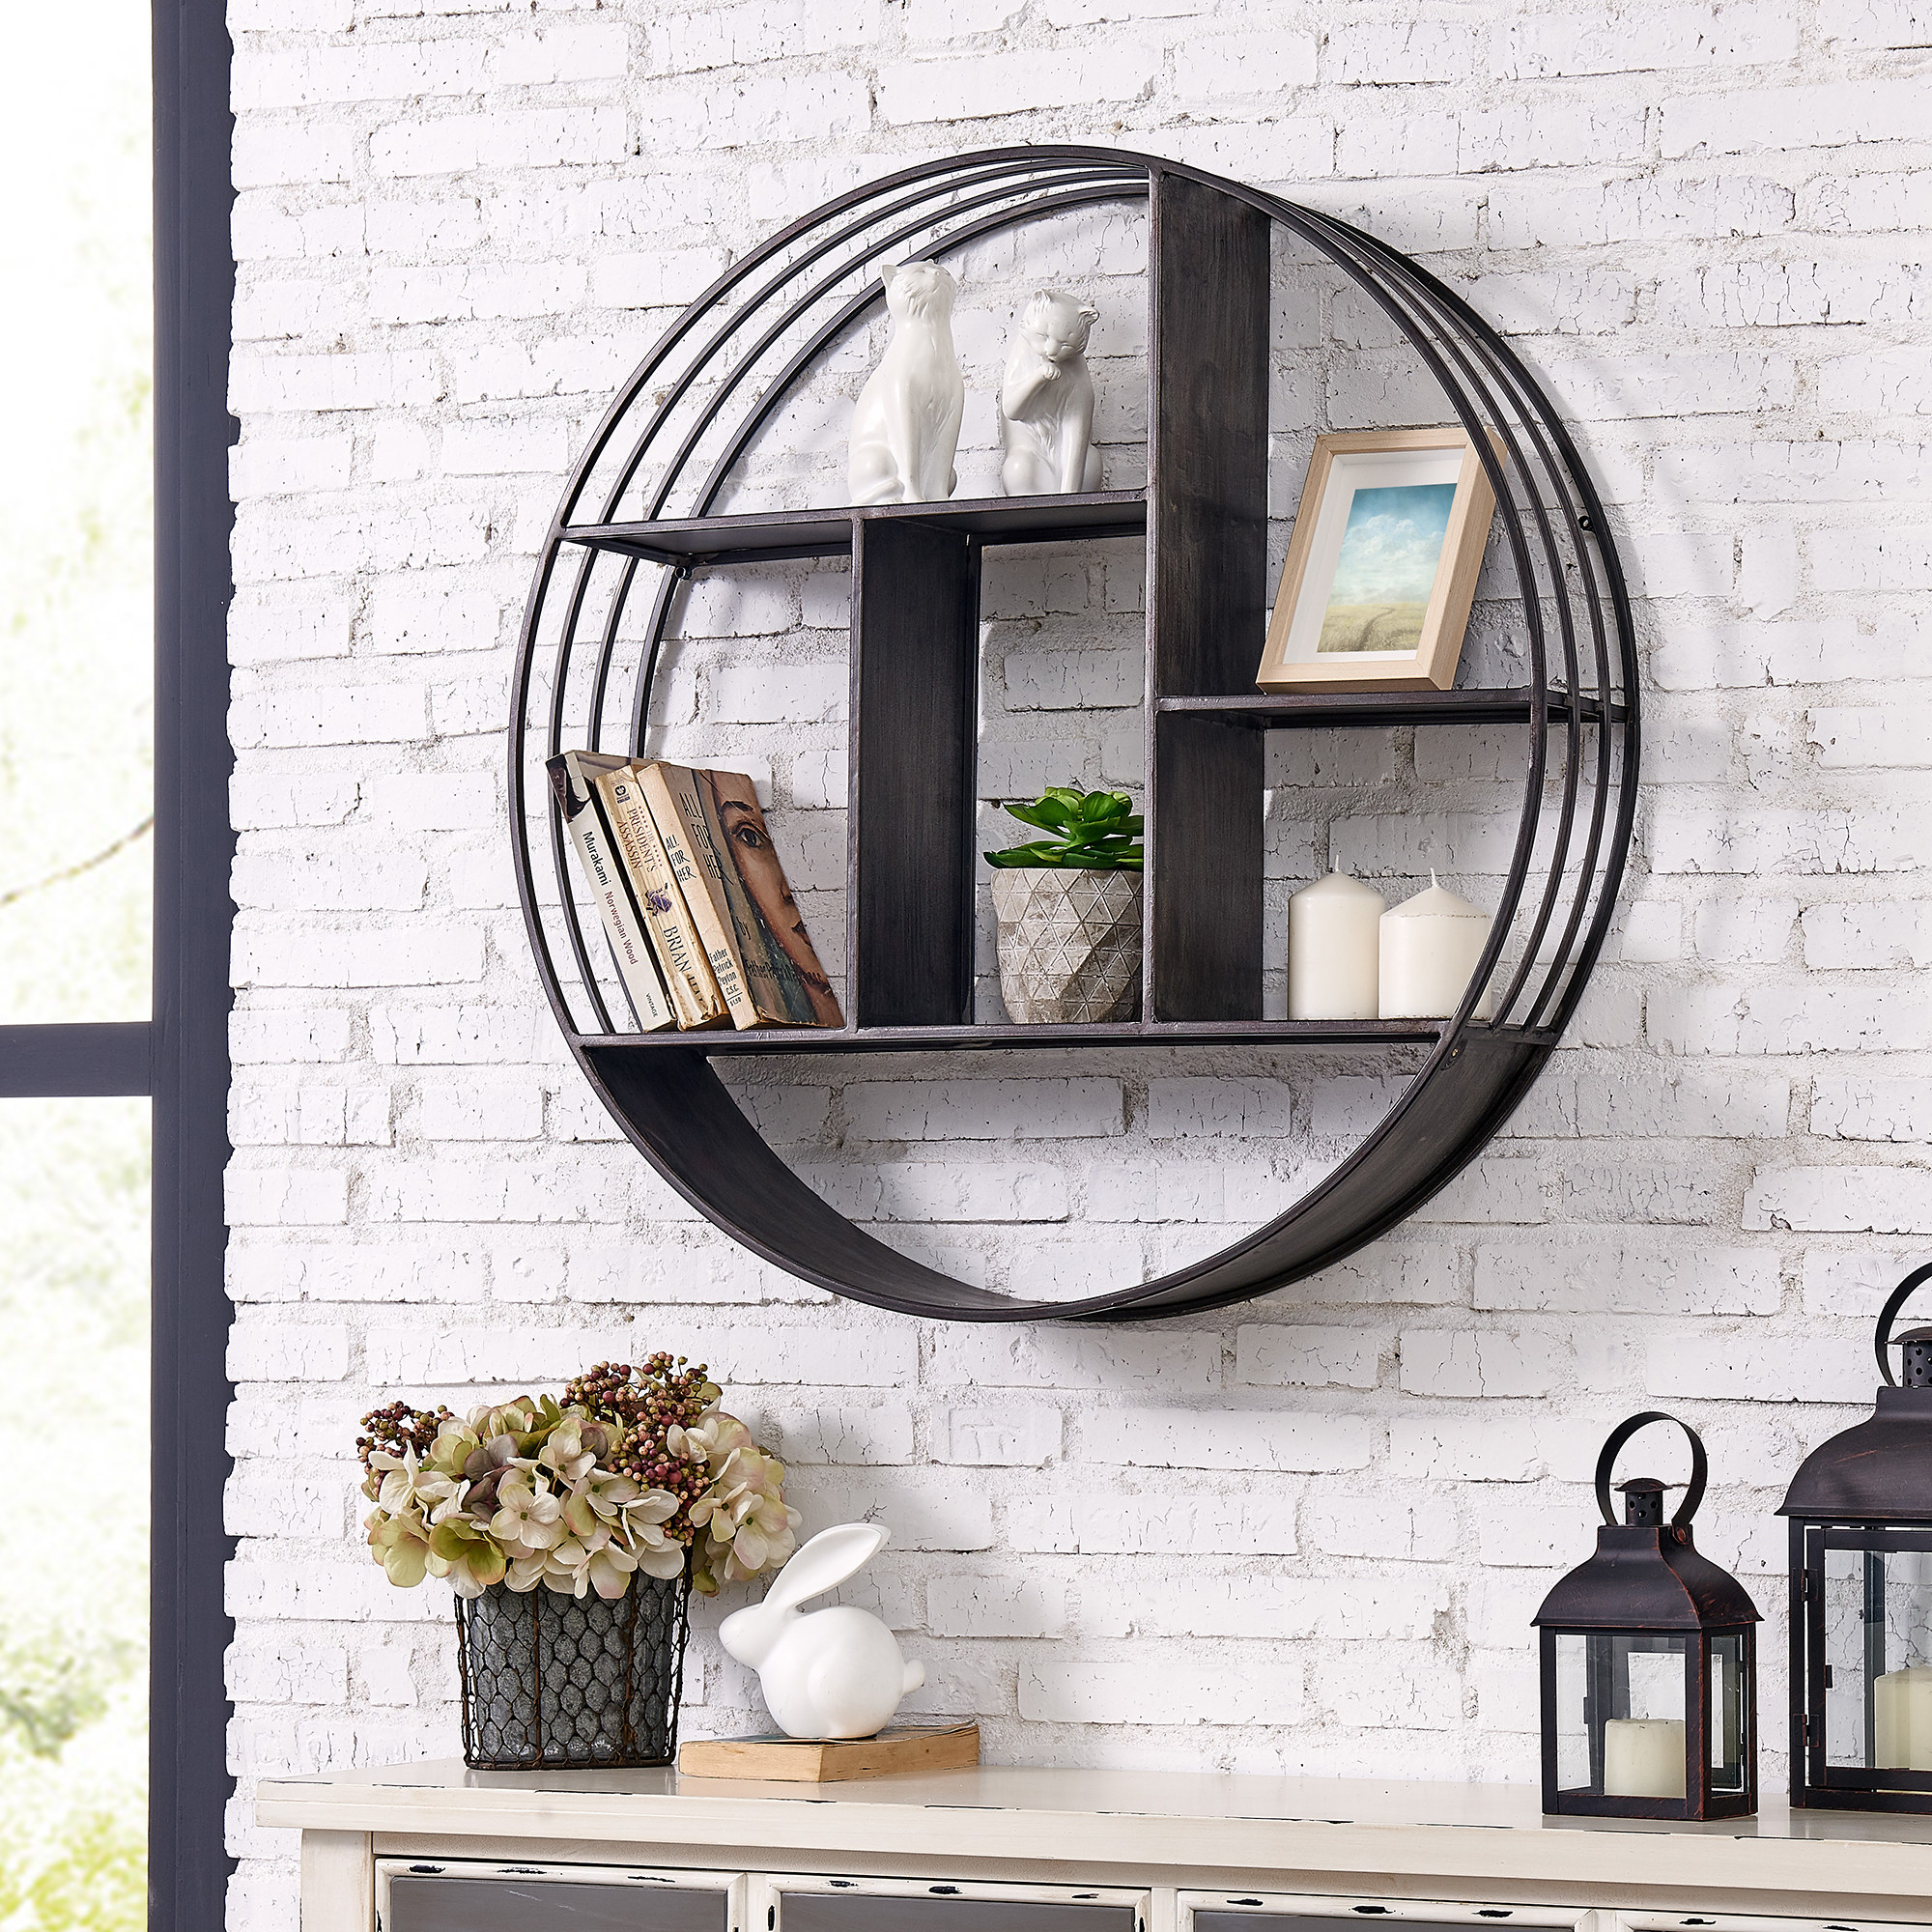 Circular shelf in metallic gray